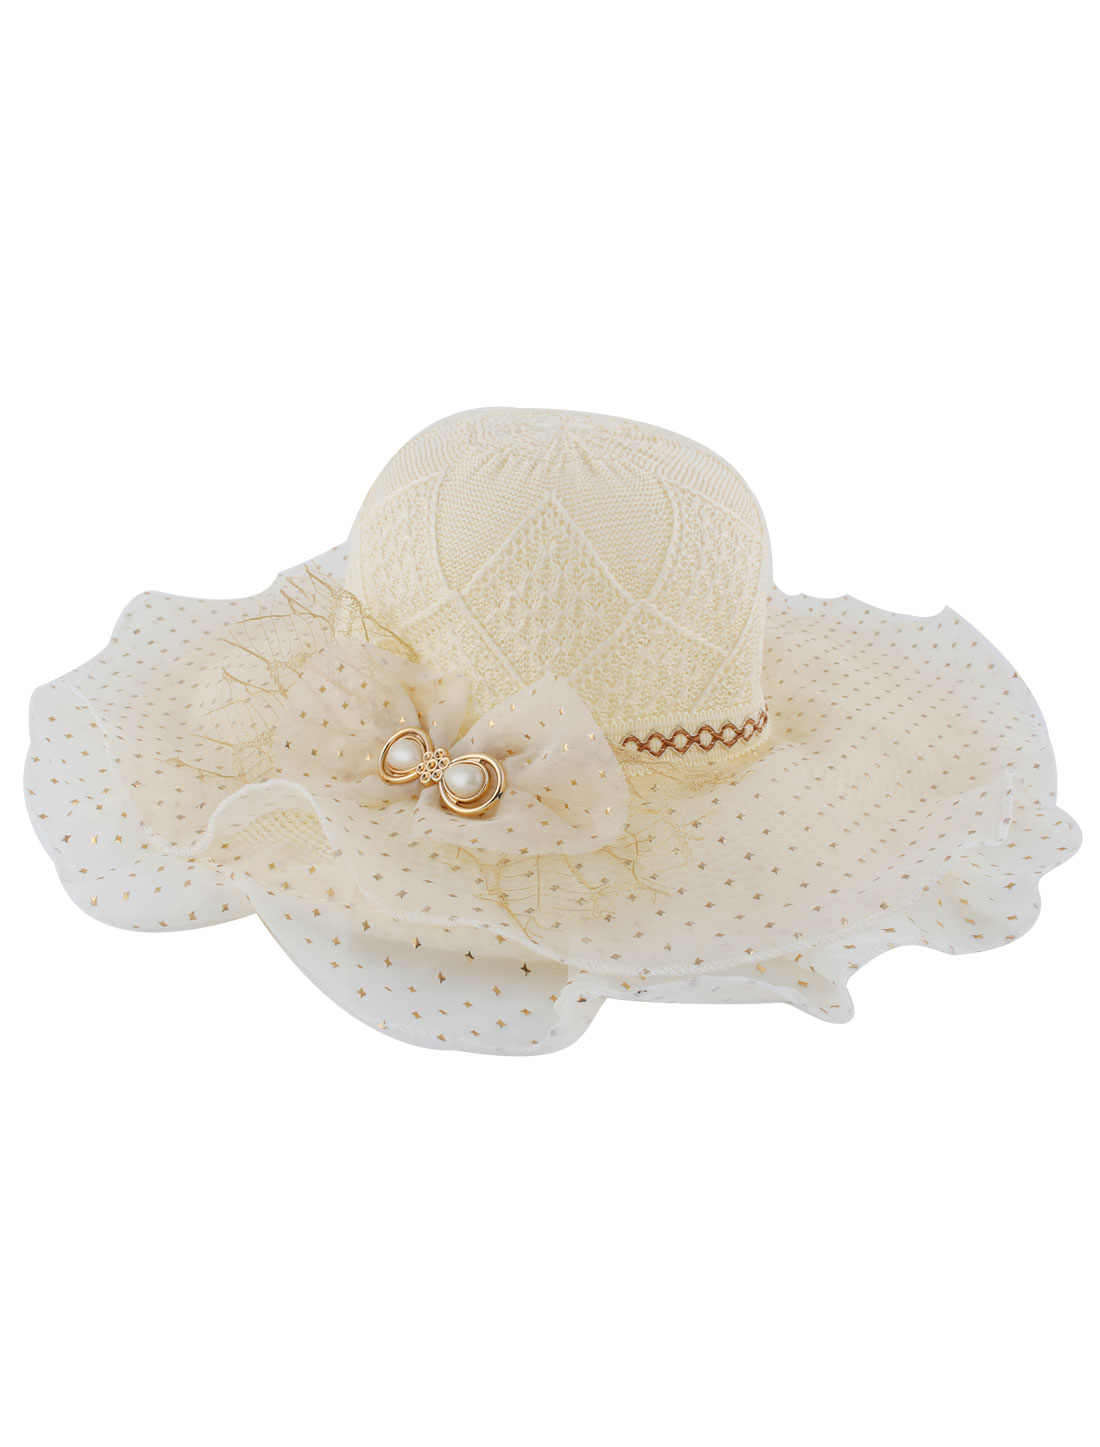 Woman Double Layers Organza Bowknot Detail Woven Sun Cap Hat Beige